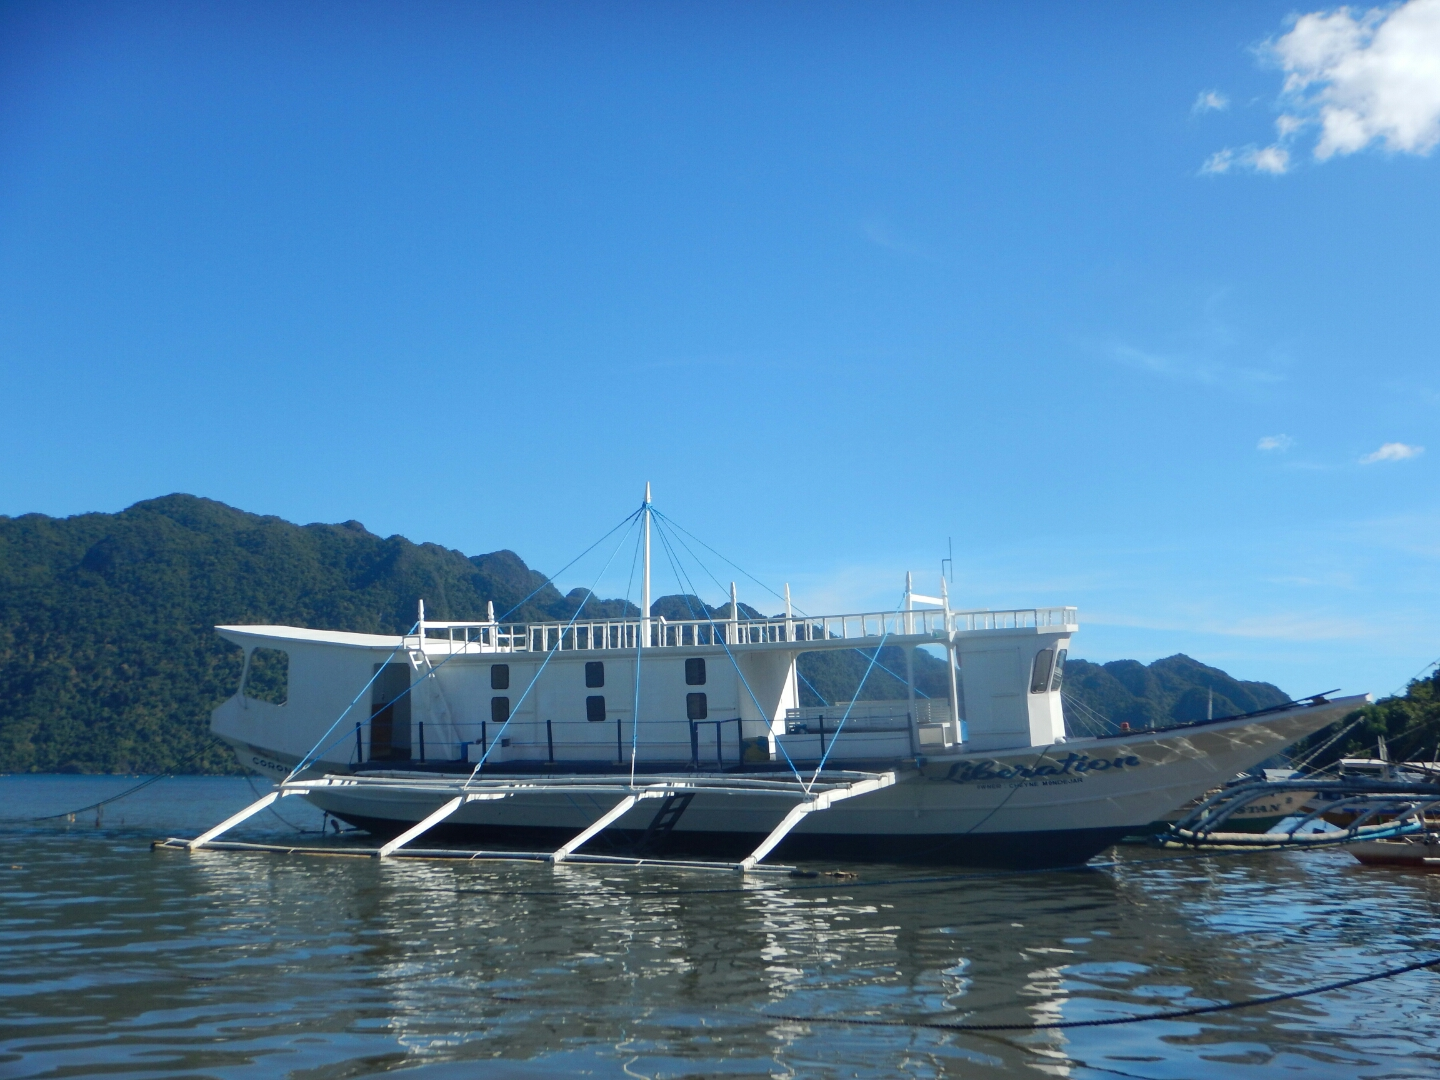 Dive Center For Sale - Budget Liveaboard Diving Boat - Coron Palawan, Philippines